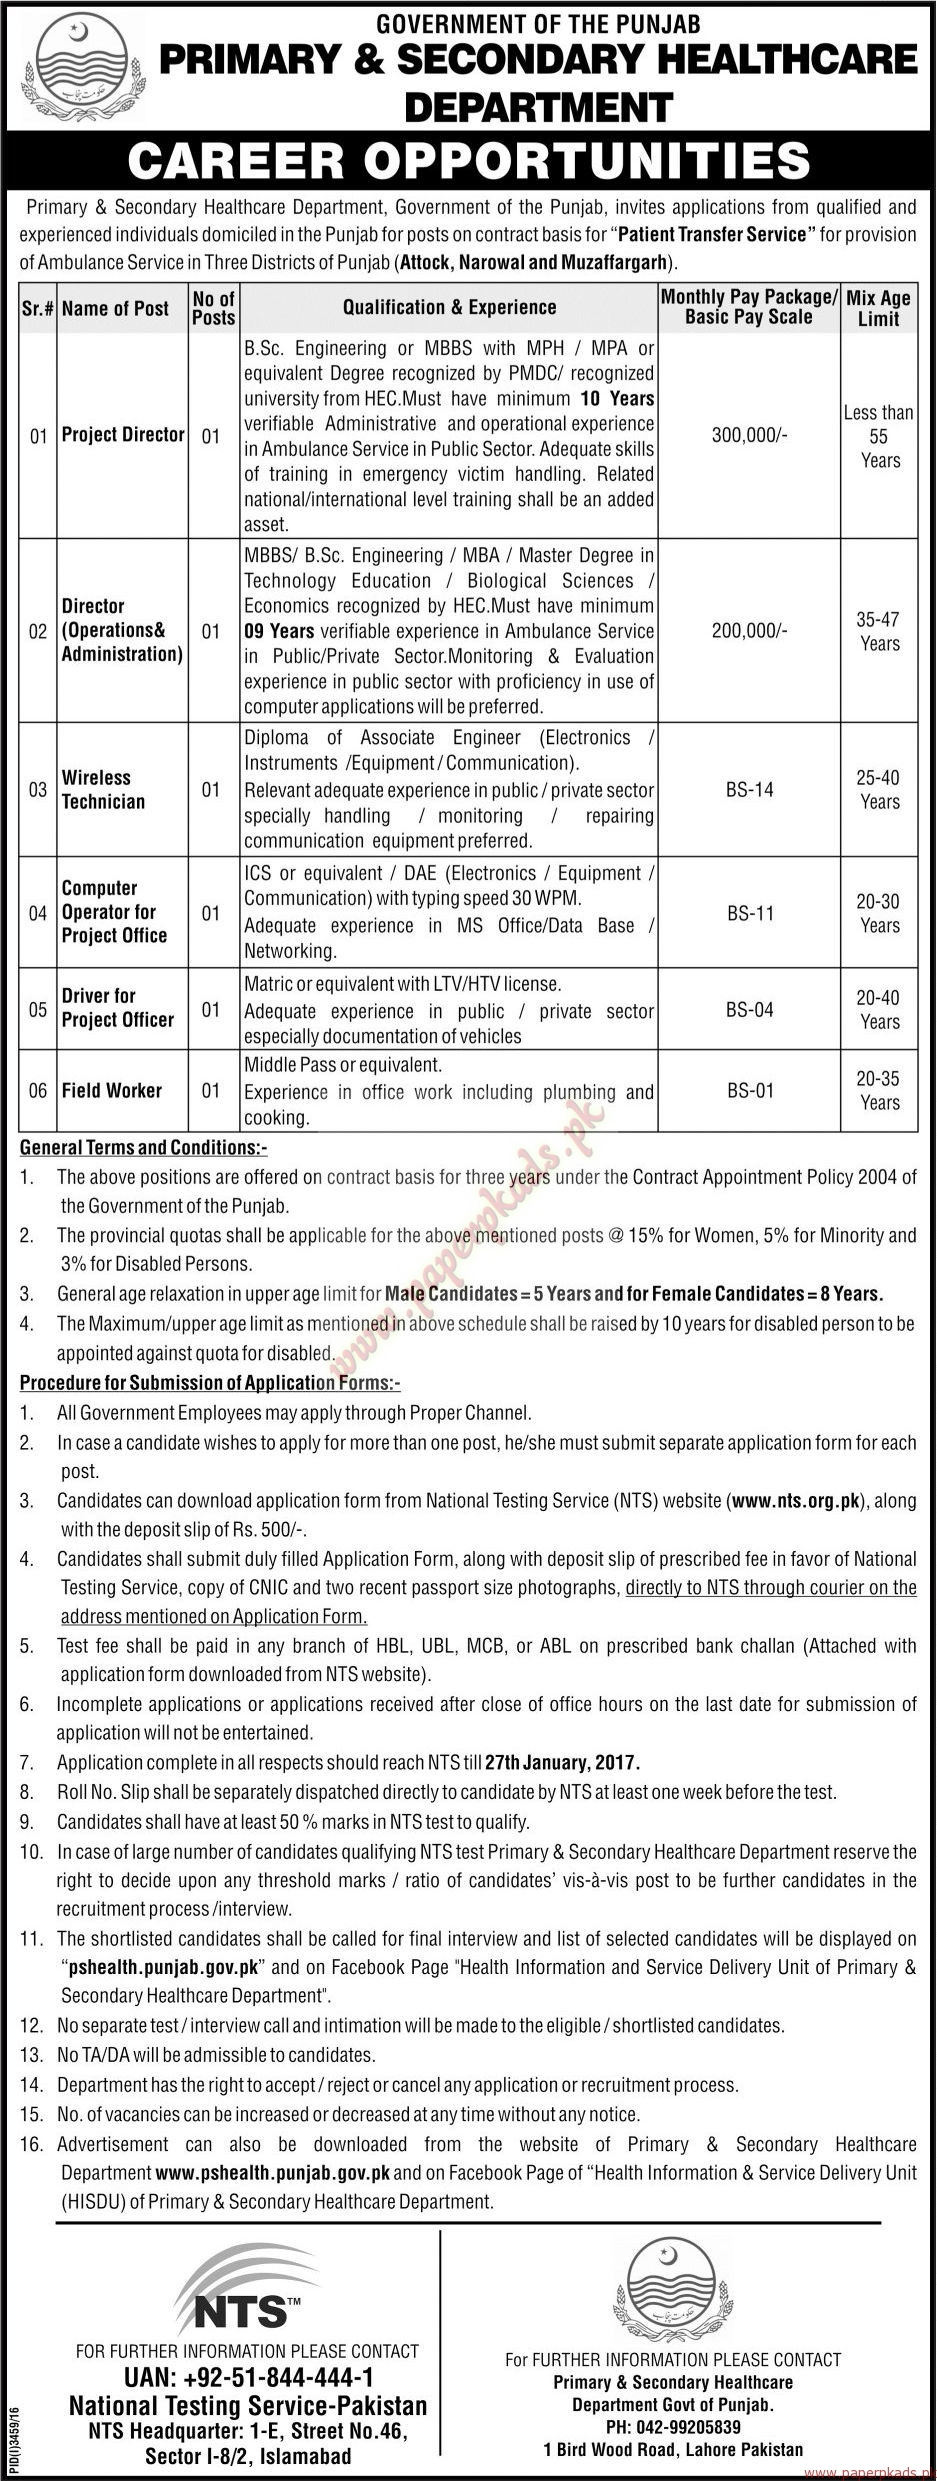 Government of the Punjab - Primary & Secondary HealthCare Department Jobs 2